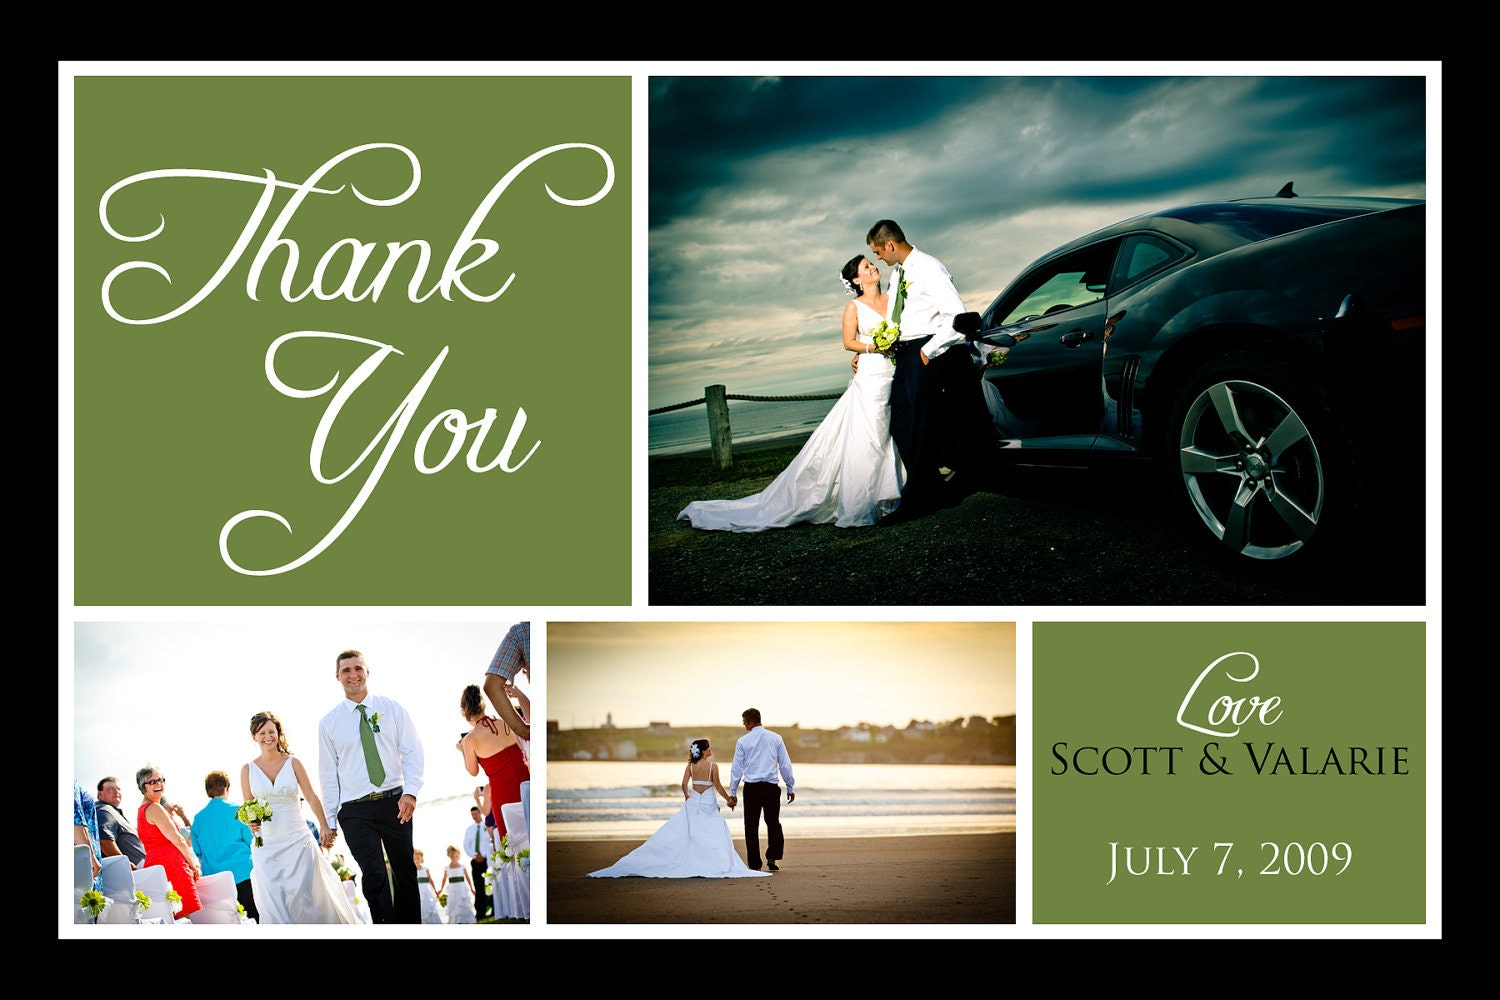 wedding thank you cards custom thank you card scott and